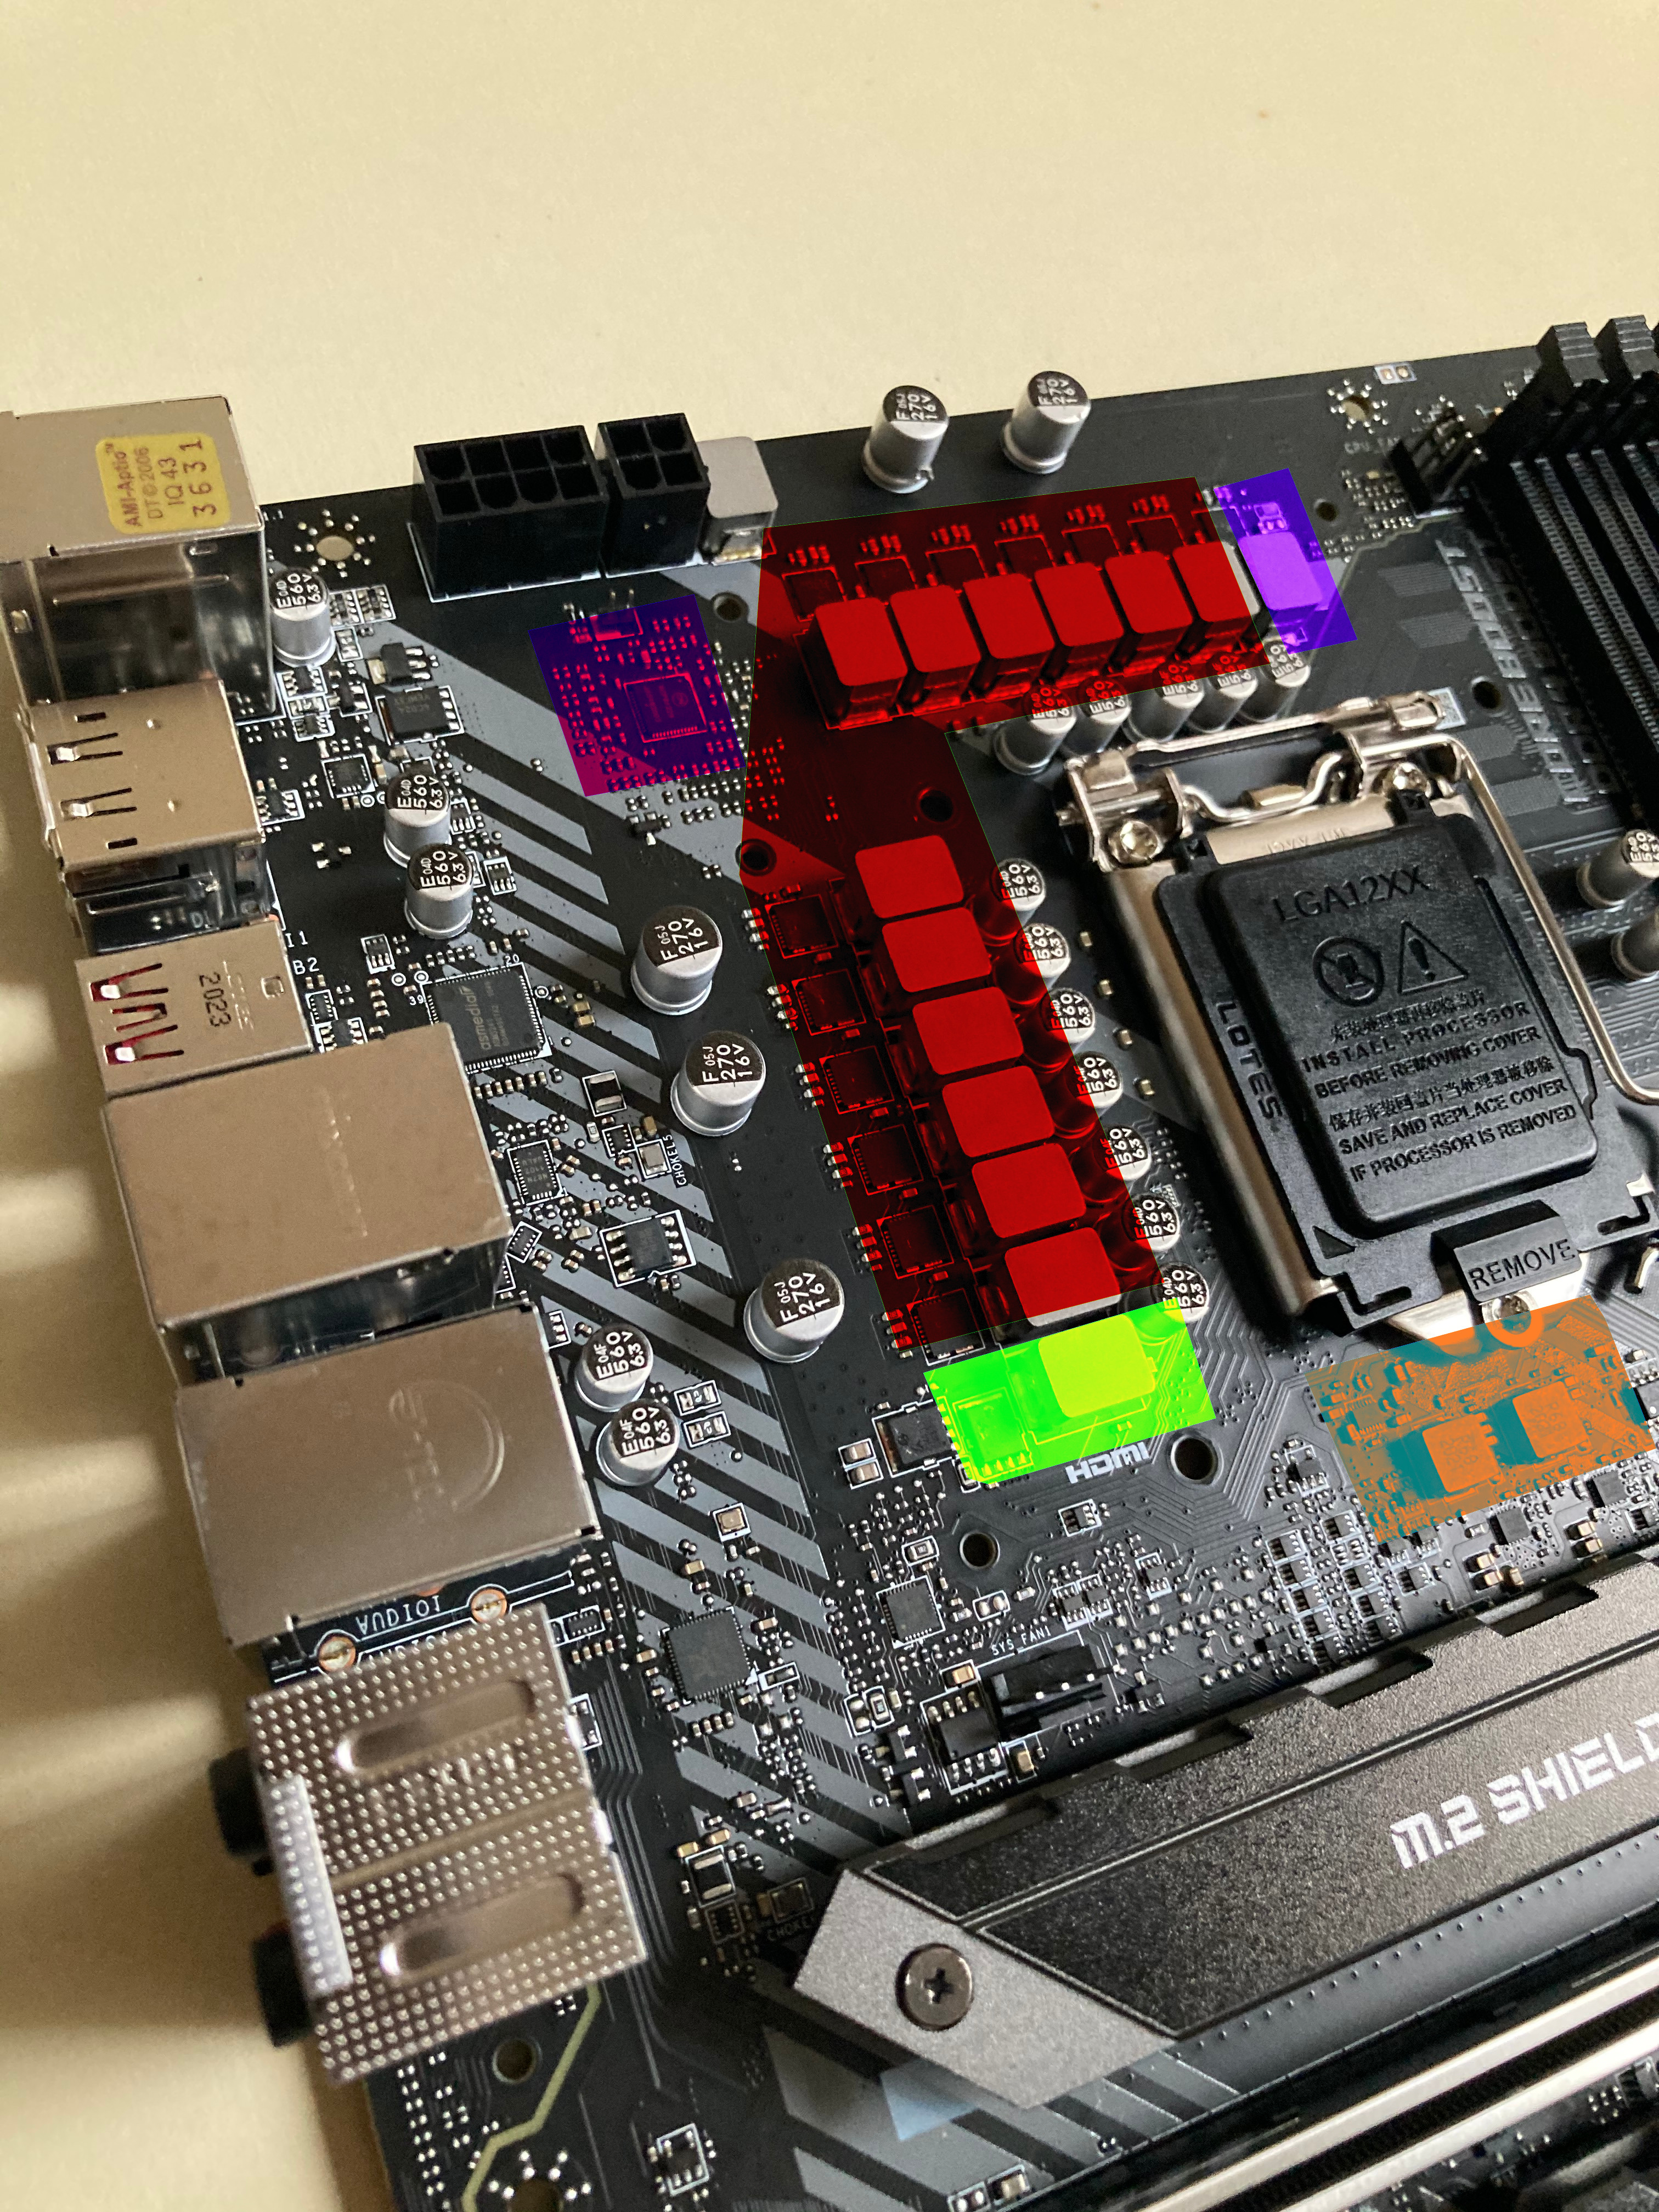 vrm-z490-tomahawk-msi-analysis-test-pcb review